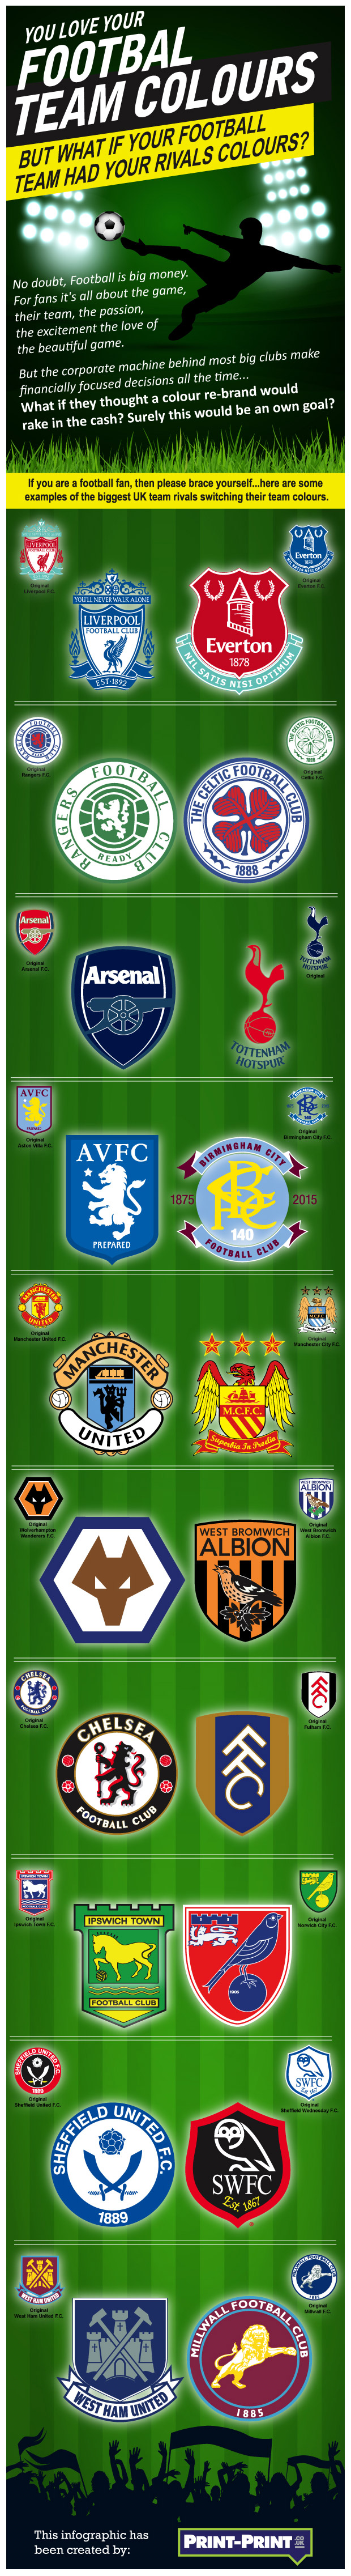 Your footbal team in rival team colours